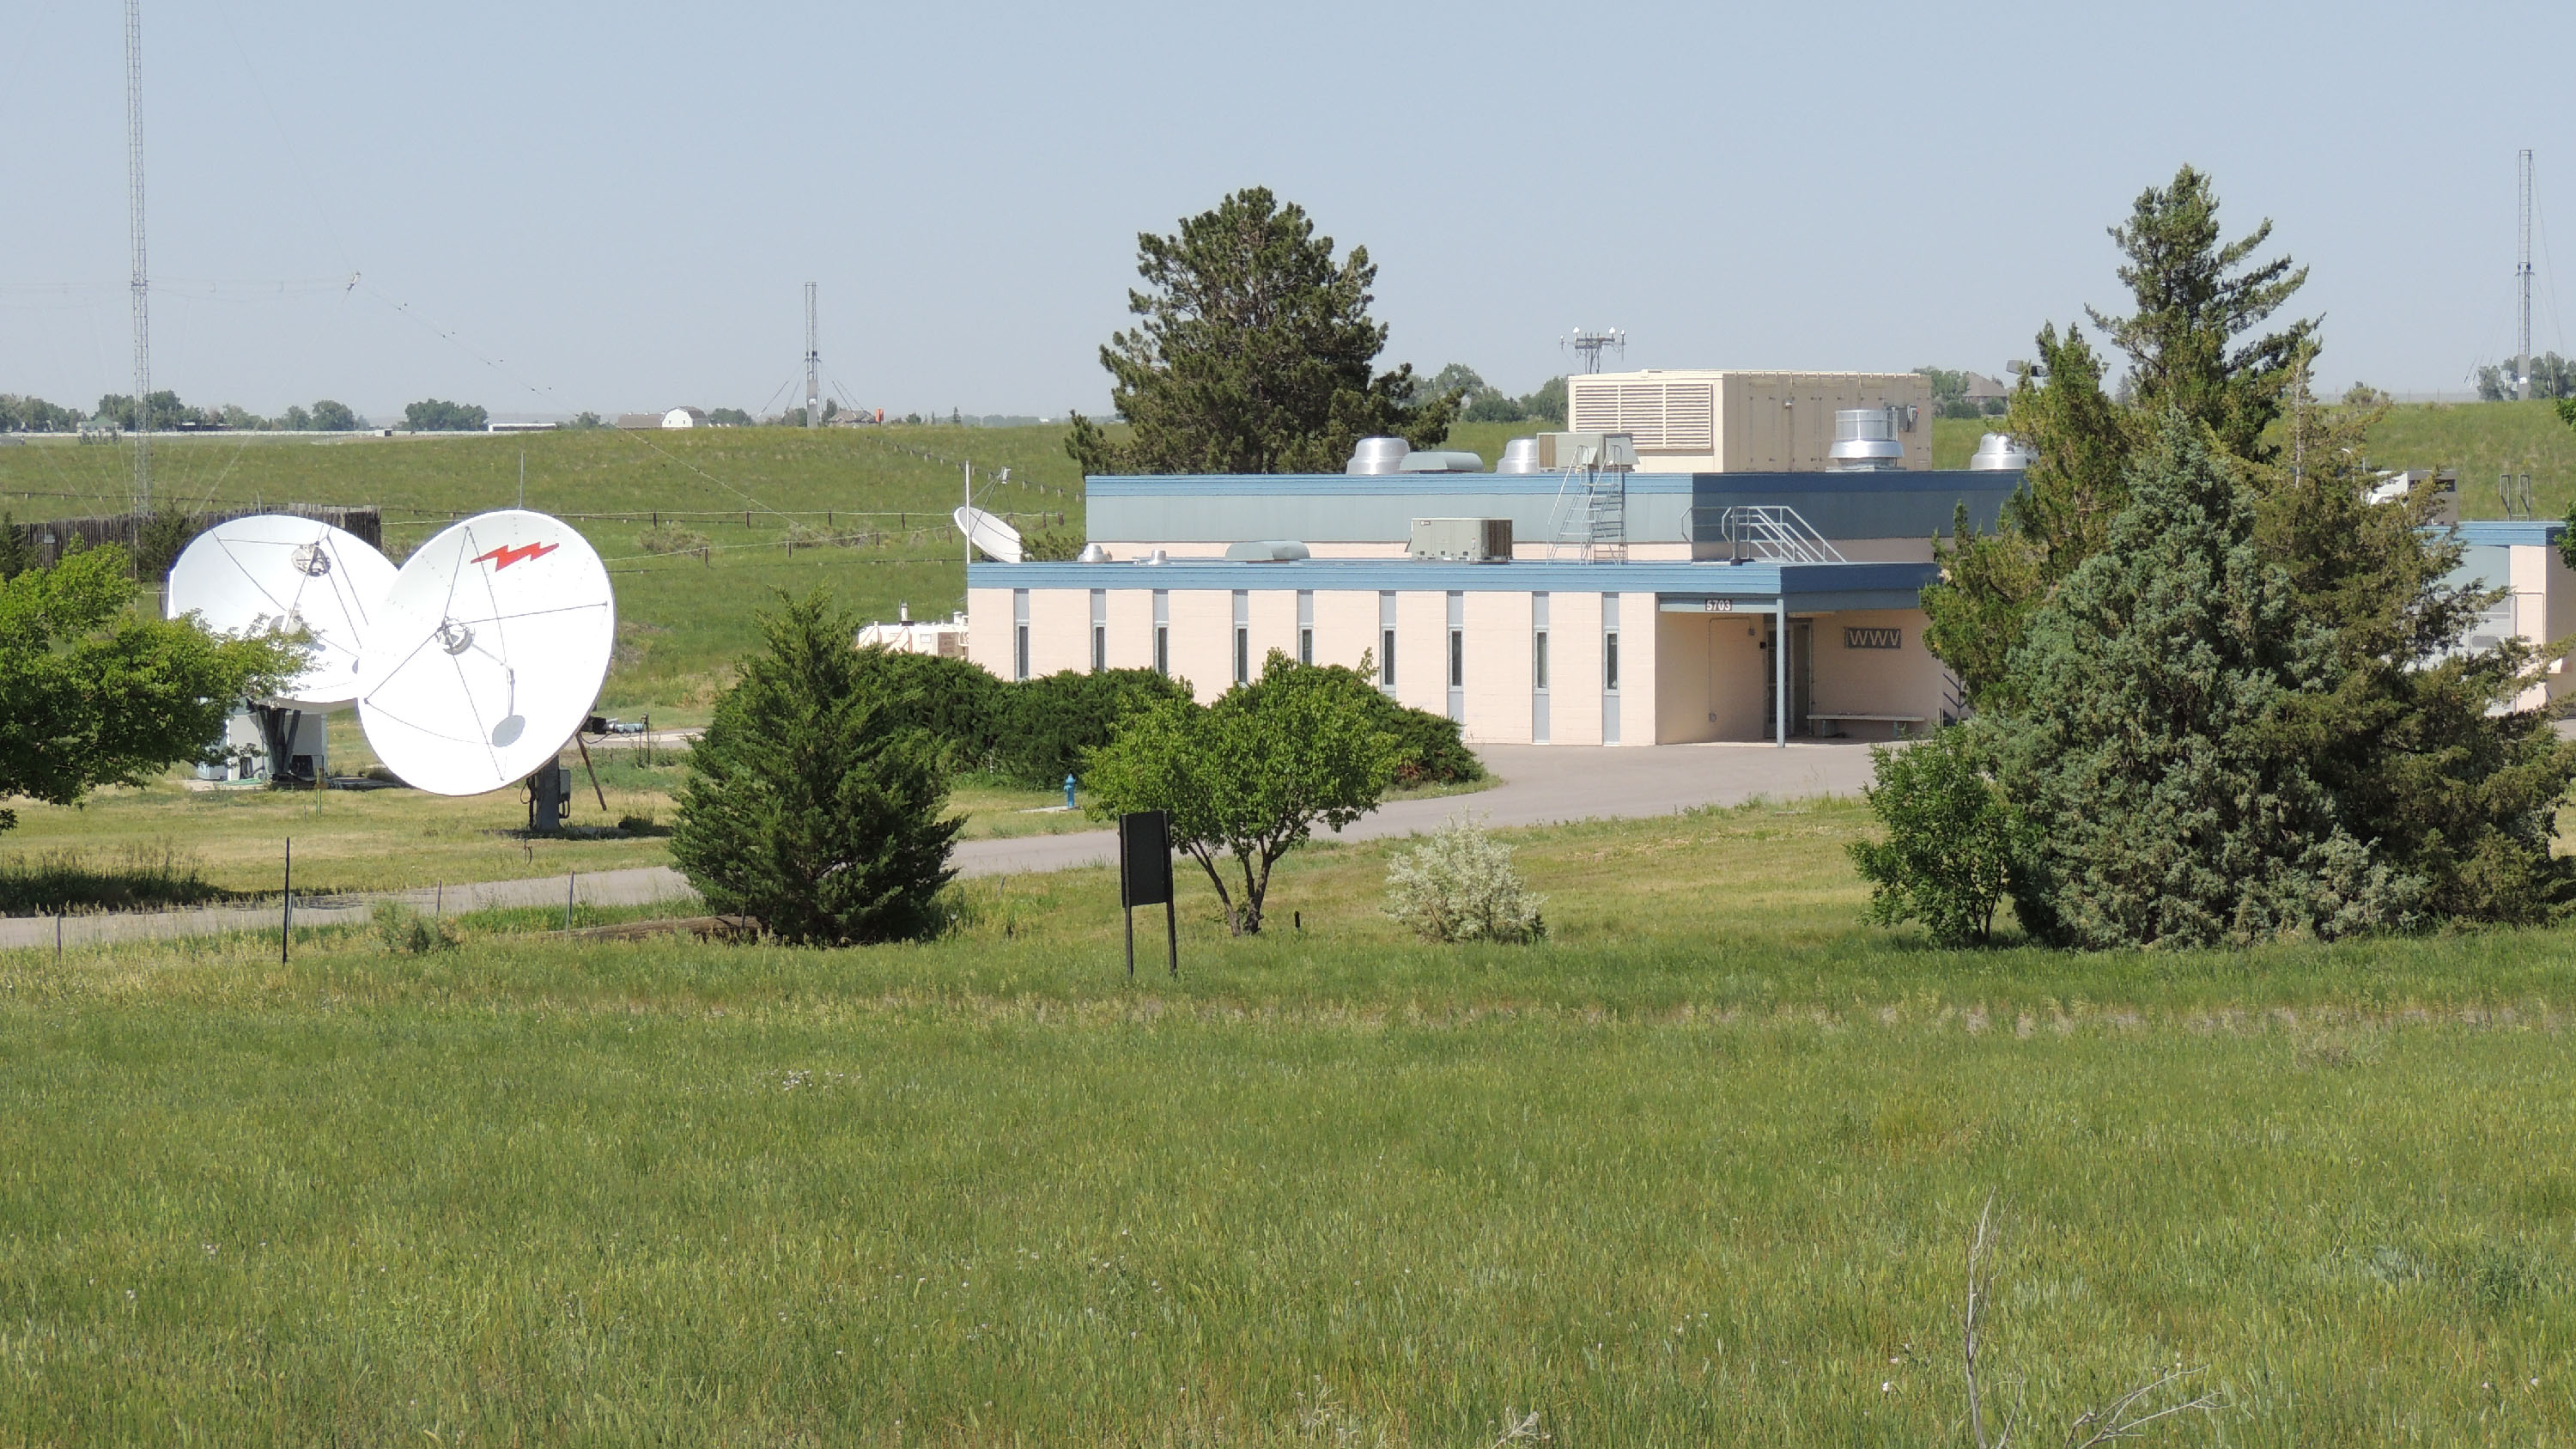 a building in a field with a few trees around it, two big radio dishes at left and some tall radio transmission antennae in the background